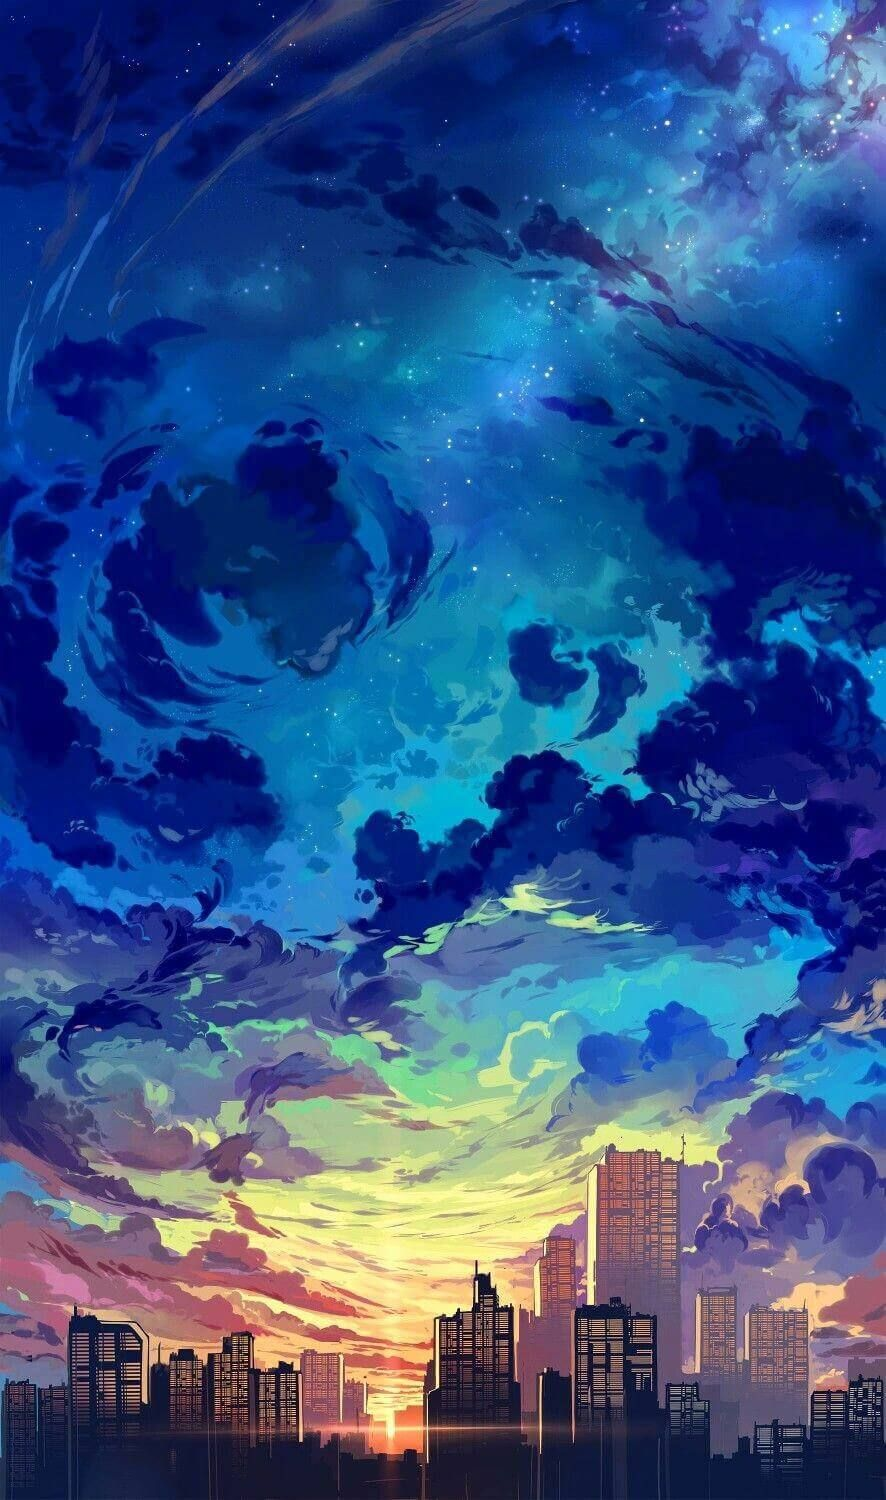 50 Mobile Wallpaper Inspiration For Those In Need Of A Change Anime Scenery Wallpaper Scenery Wallpaper Anime Scenery Anime scenery wallpaper phone